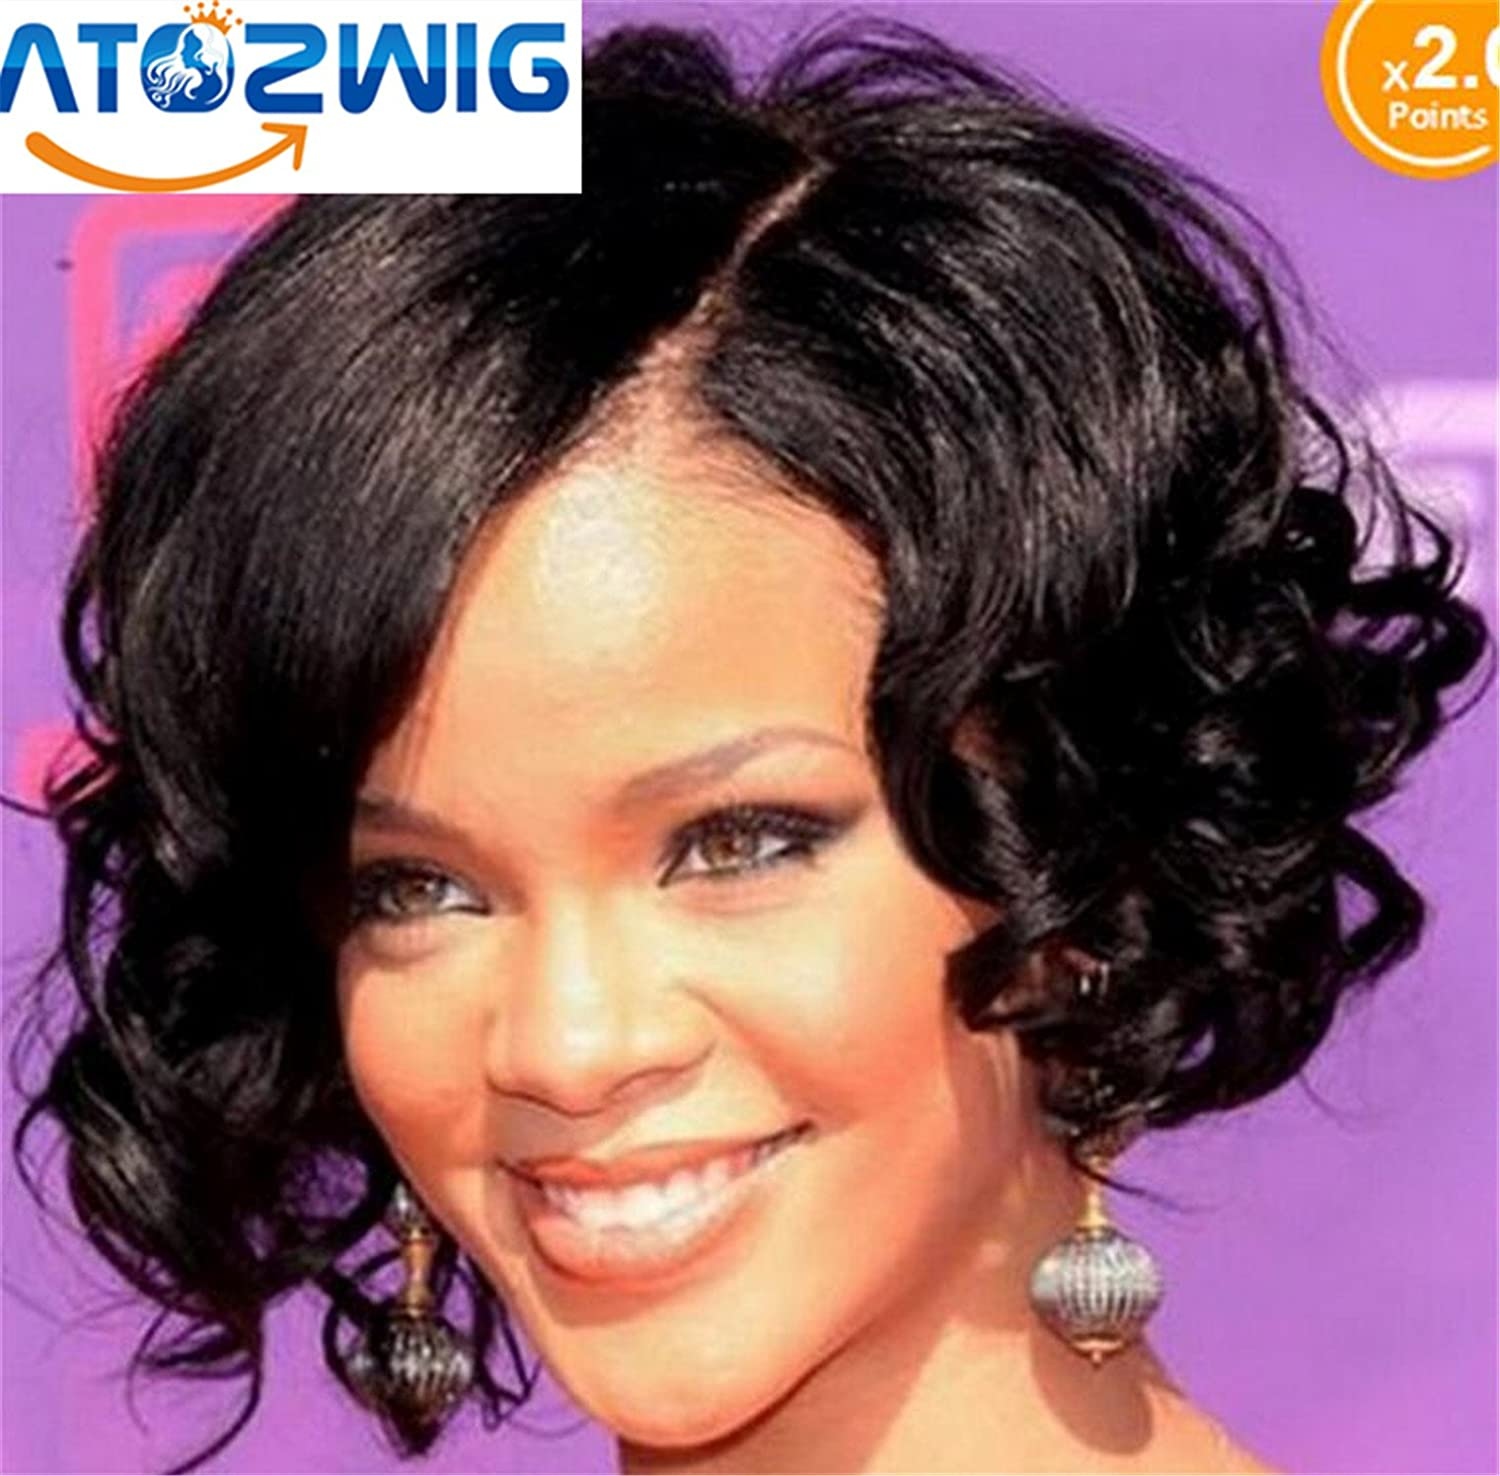 Atozwig Black Women Wig Fashion Style Black Curly Synthetic Wig Pure Color Short Curly Wigs Shoulder Length Short Hair Wig Amazon In Beauty